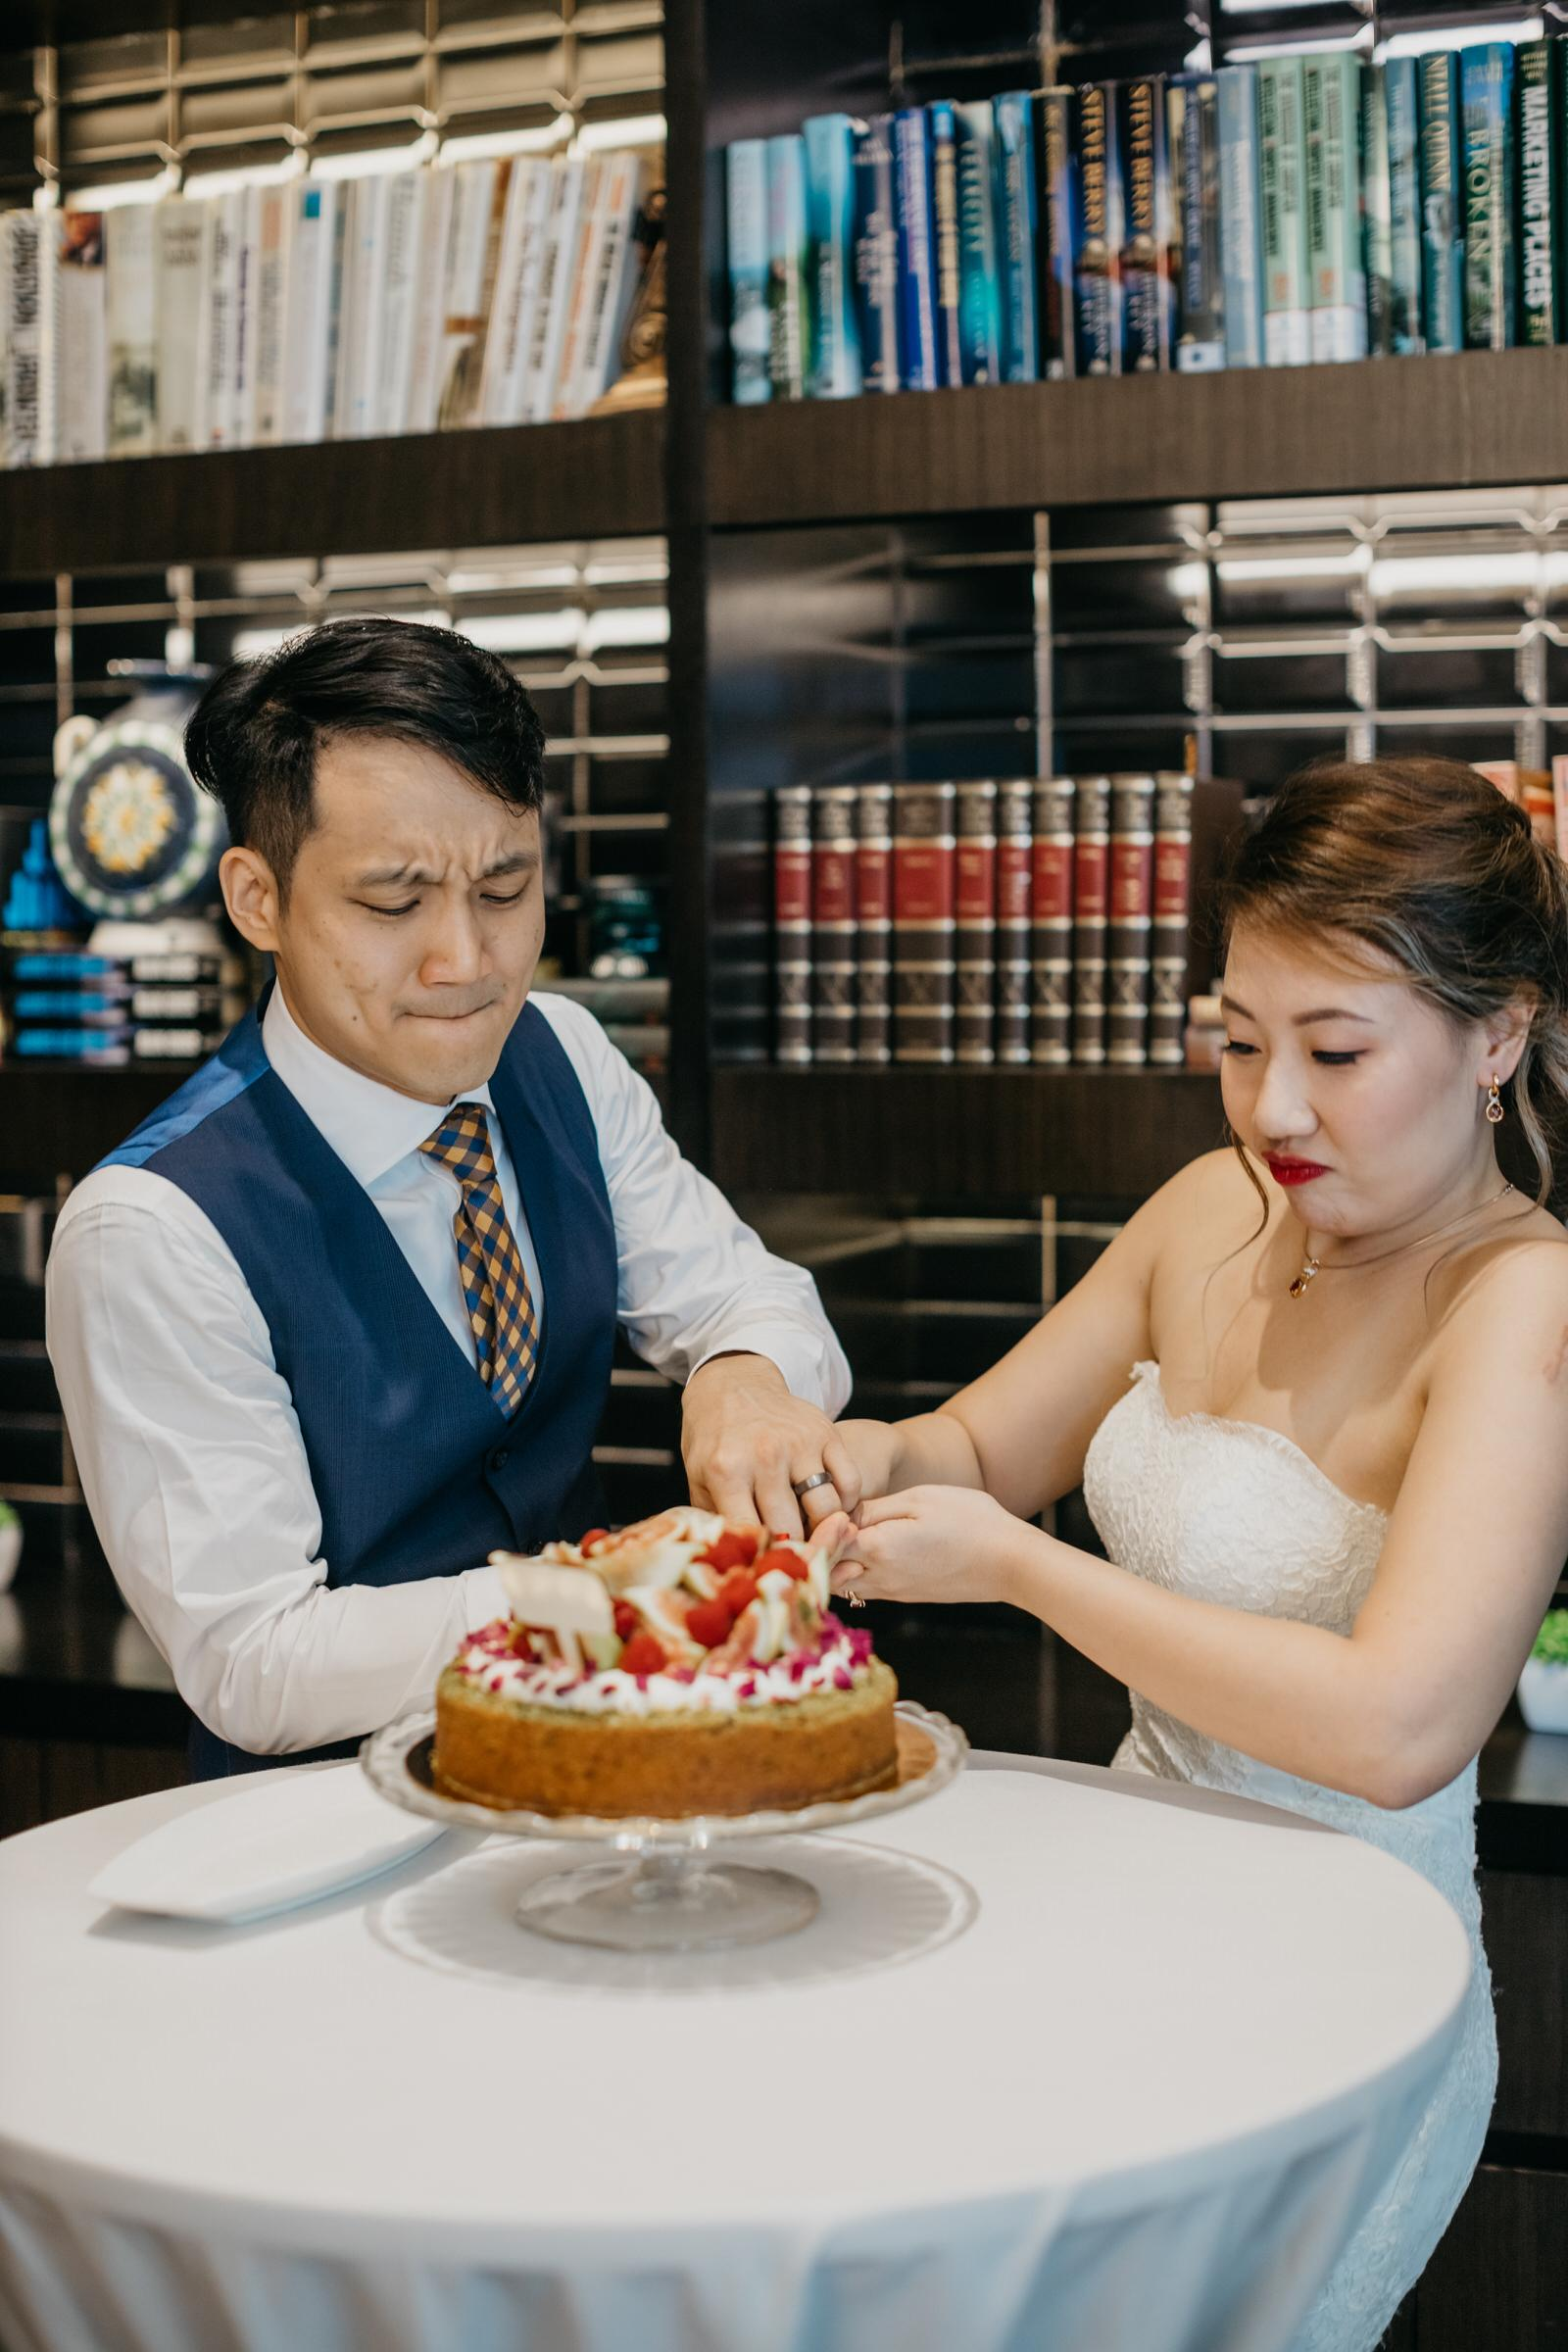 Rustic Wedding Fruit Cake Brasserie 25 French Cuisine Wedding reception at Hotel Stripes Kuala Lumpur MCO2.0 SOP Cliff Choong Photography Malaysia Covid19 ROM